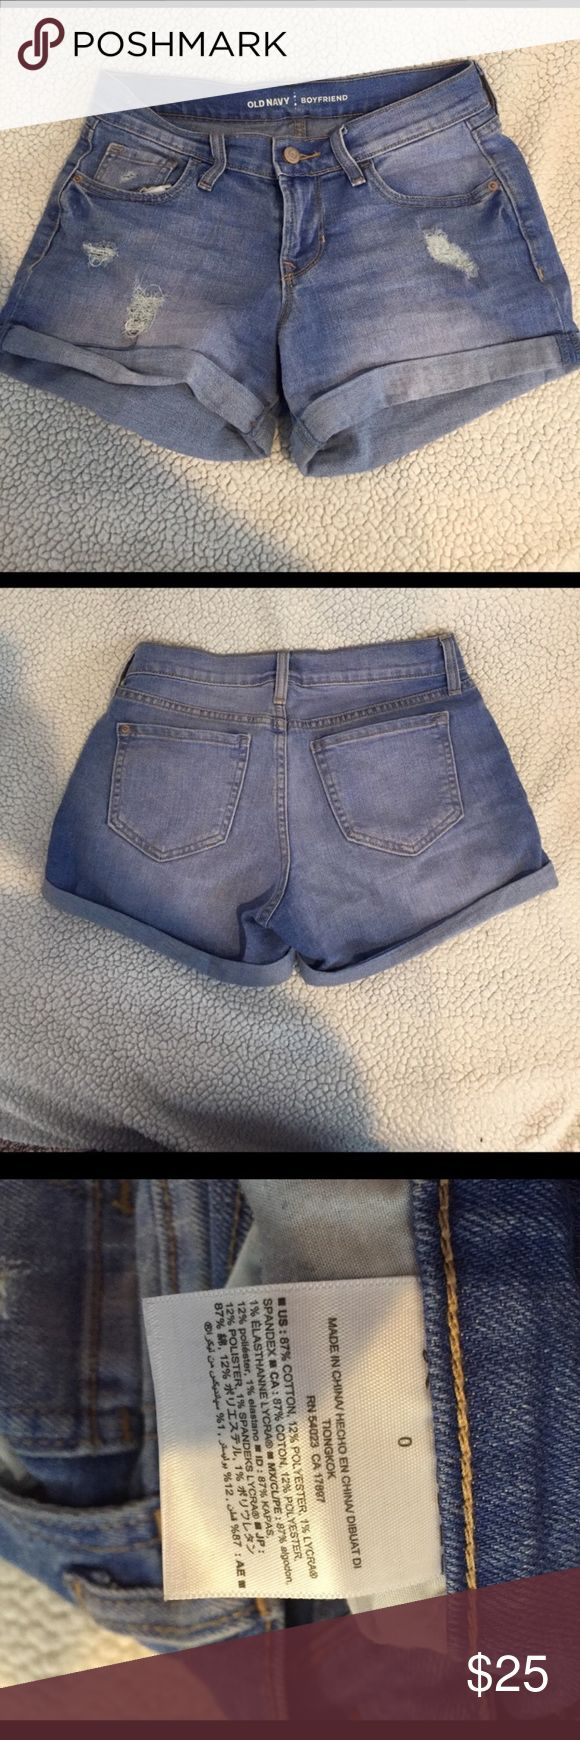 """Old navy boyfriend shorts NWOT. Waist 13.5"""" inseam 3"""".  *measurements are approximate* dog friendly smoke free home. Old Navy Shorts Jean Shorts"""